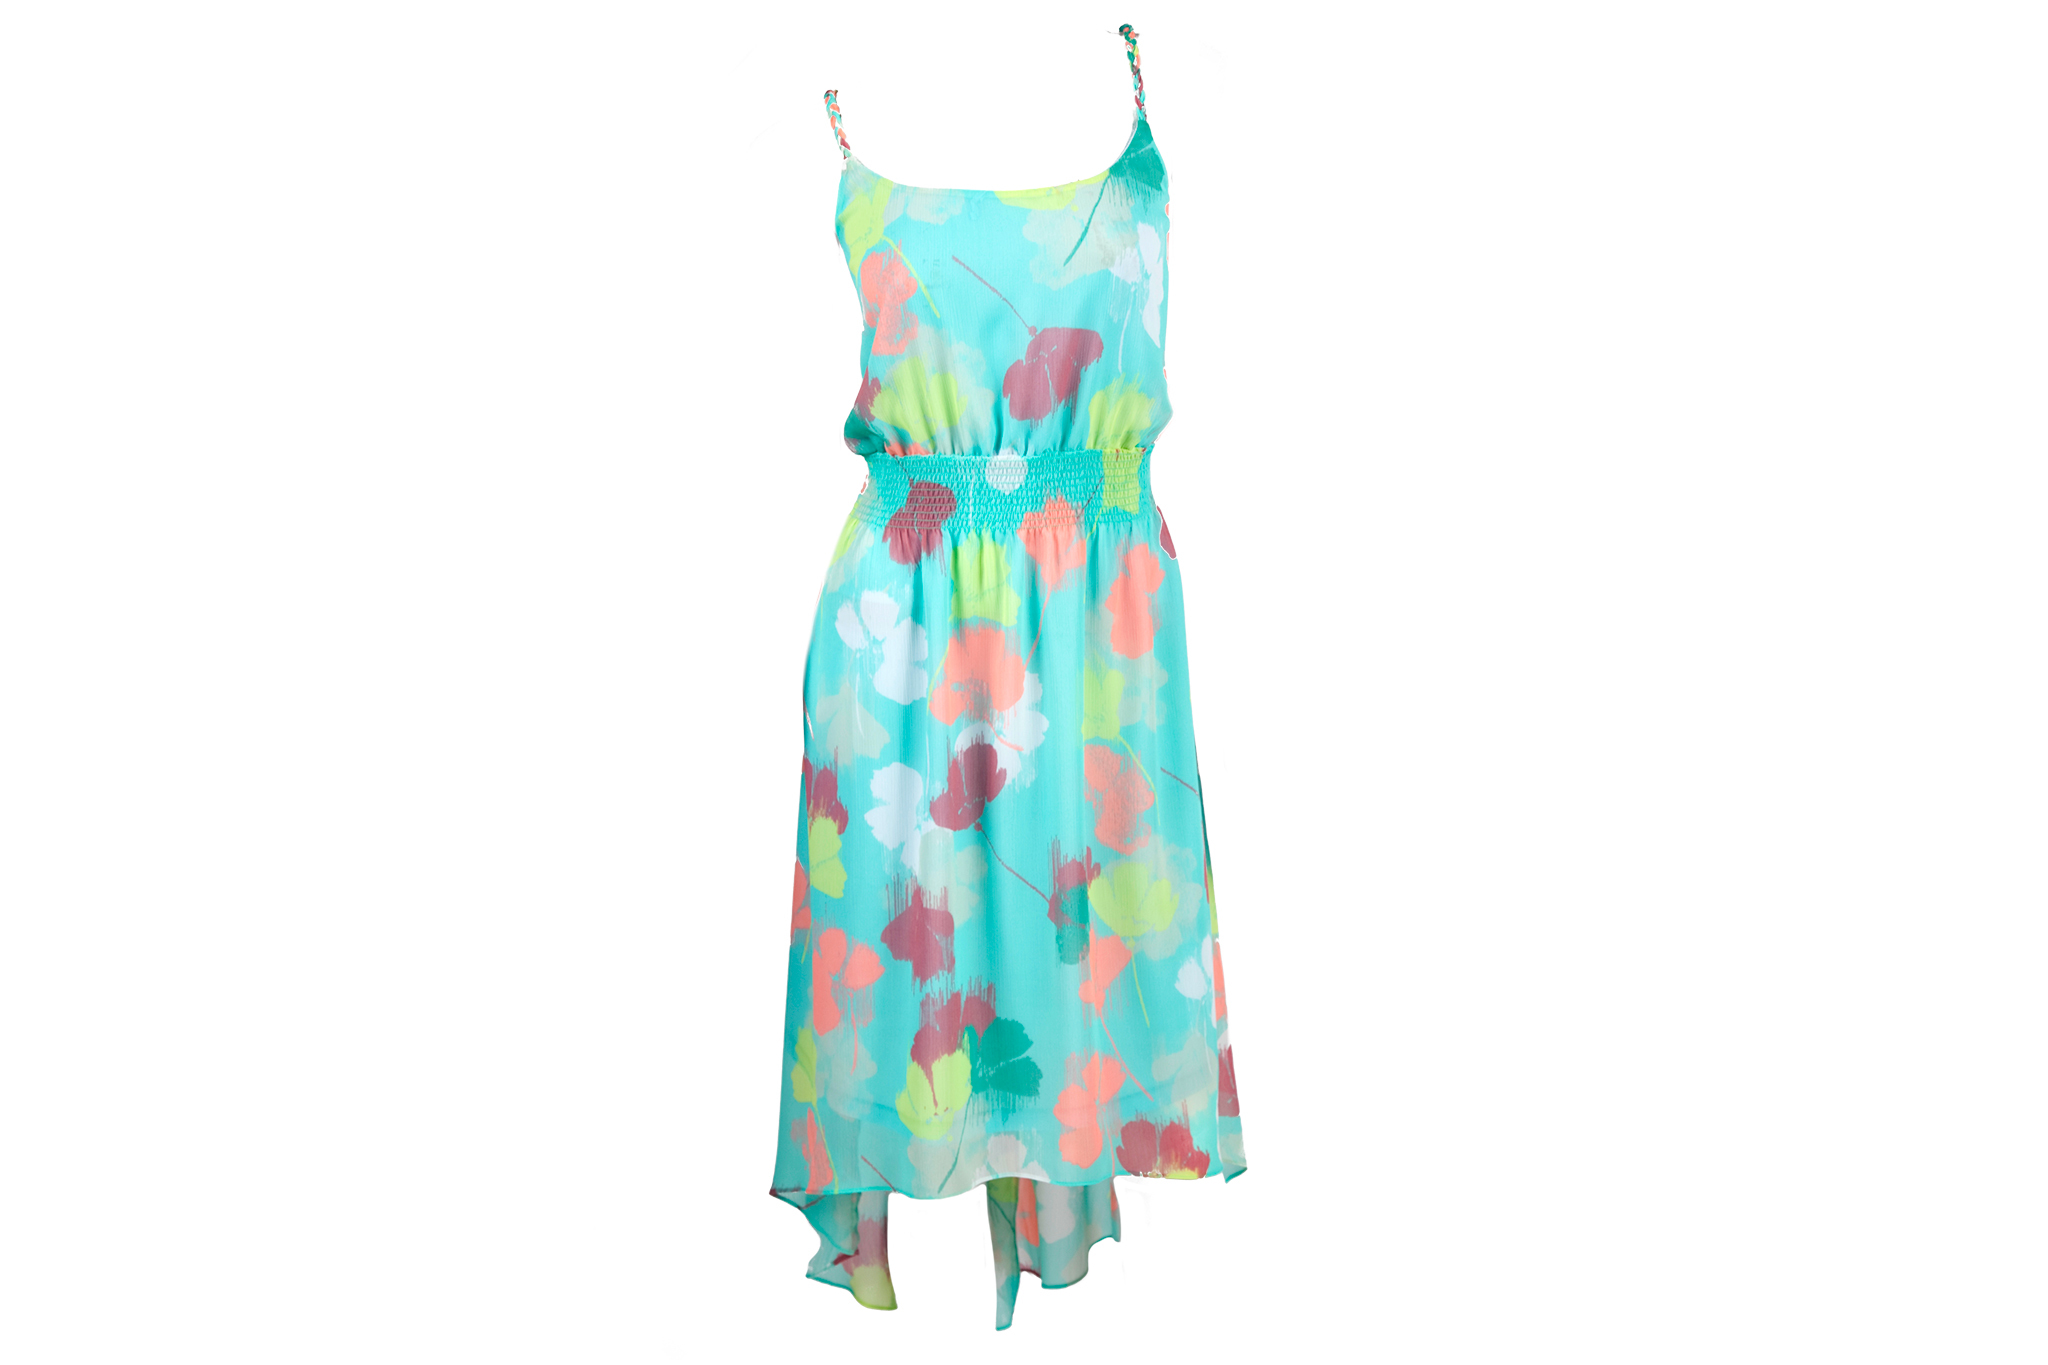 Lane Bryant floral high-low dress, $80